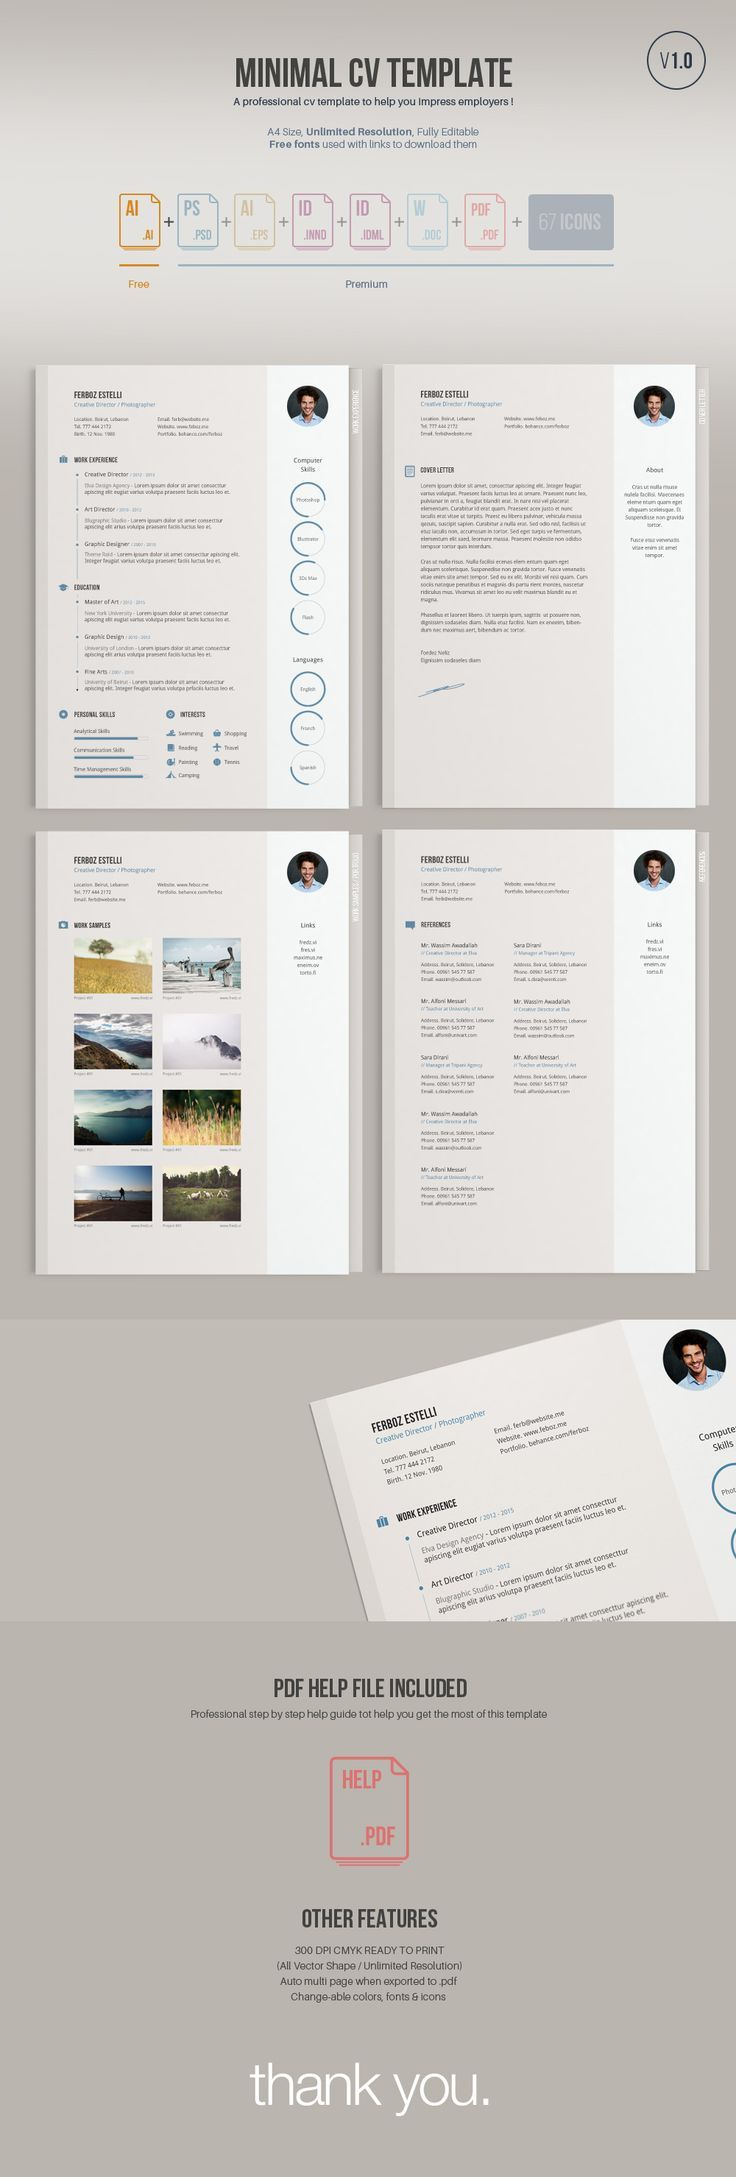 276 best Templates images on Pinterest | Editorial design, Page ...